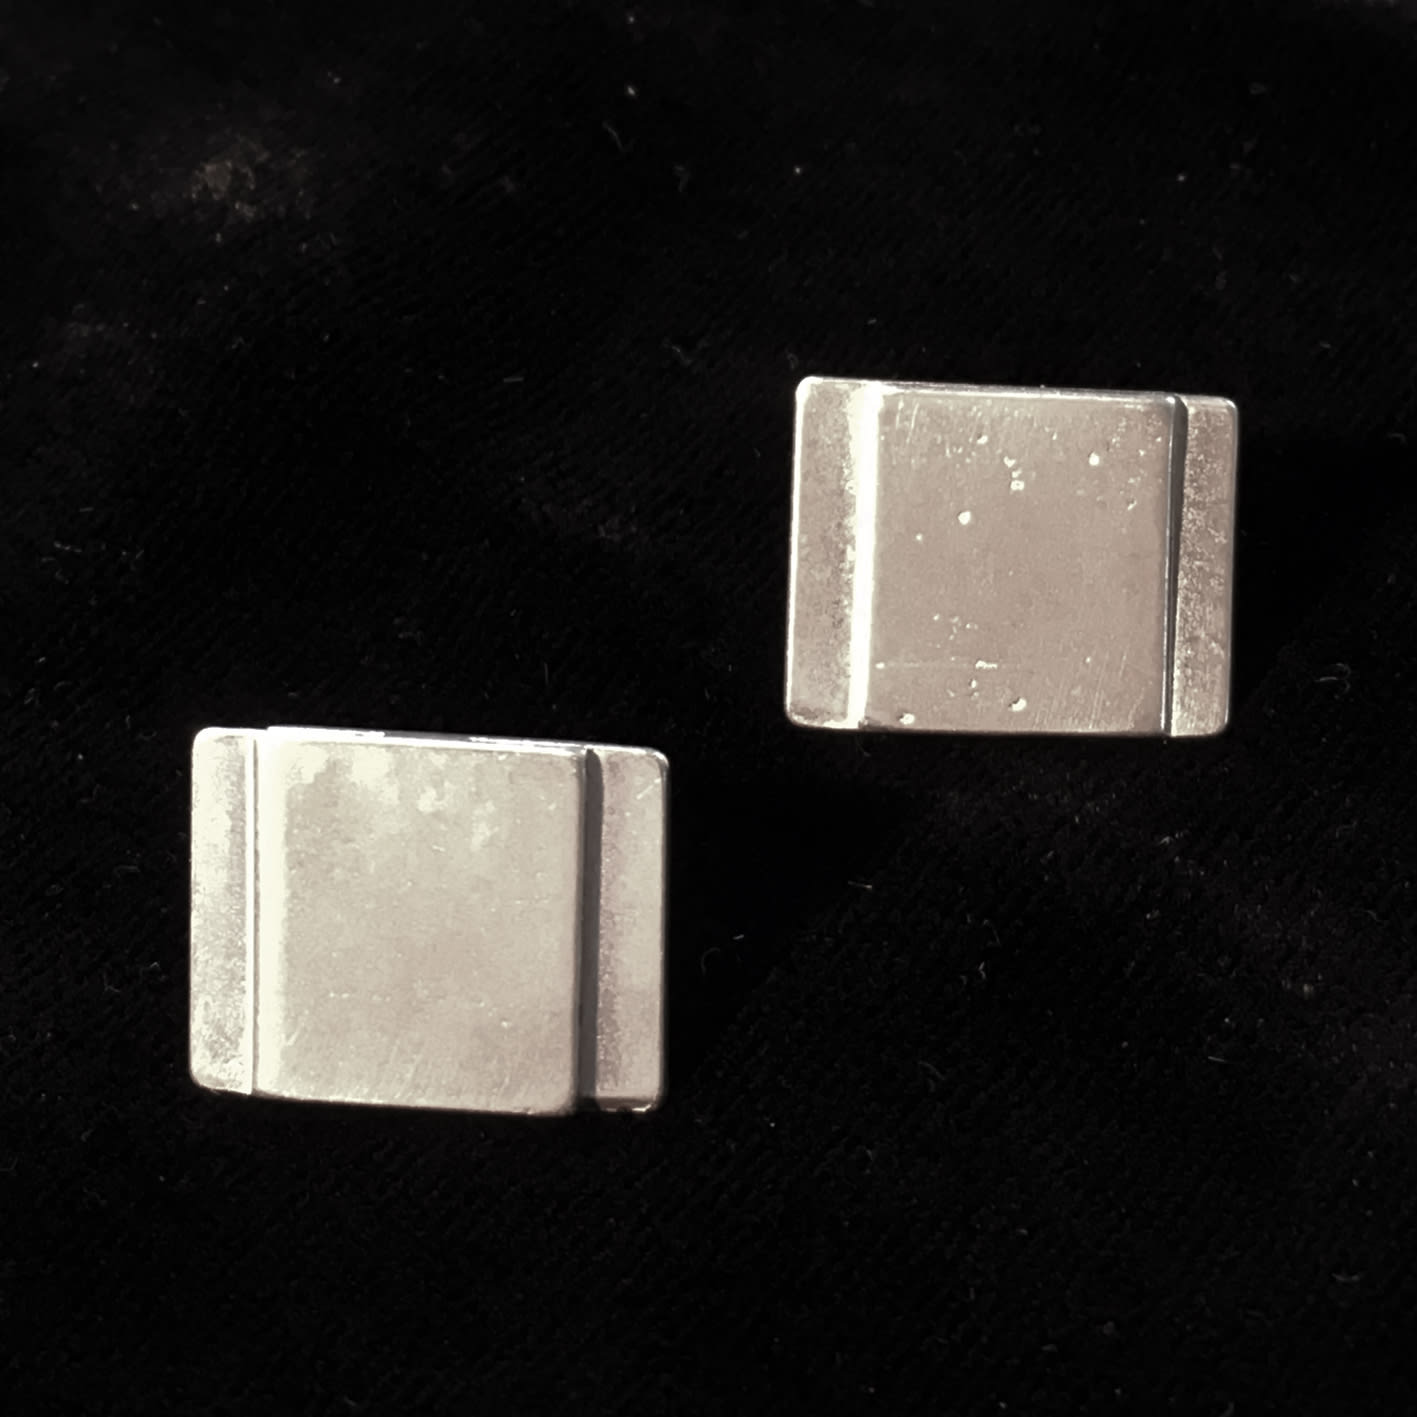 "<span class=""link fancybox-details-link""><a href=""/artists/186-helen-feiler/works/6752-helen-feiler-silver-geometric-stud-earrings-2019/"">View Detail Page</a></span><div class=""artist""><strong>Helen Feiler</strong></div> <div class=""title""><em>Silver 'Geometric' Stud Earrings</em>, 2019</div> <div class=""medium"">silver</div><div class=""price"">£110.00</div><div class=""copyright_line"">Own Art: £11.00 x 10 monthly payments</div>"